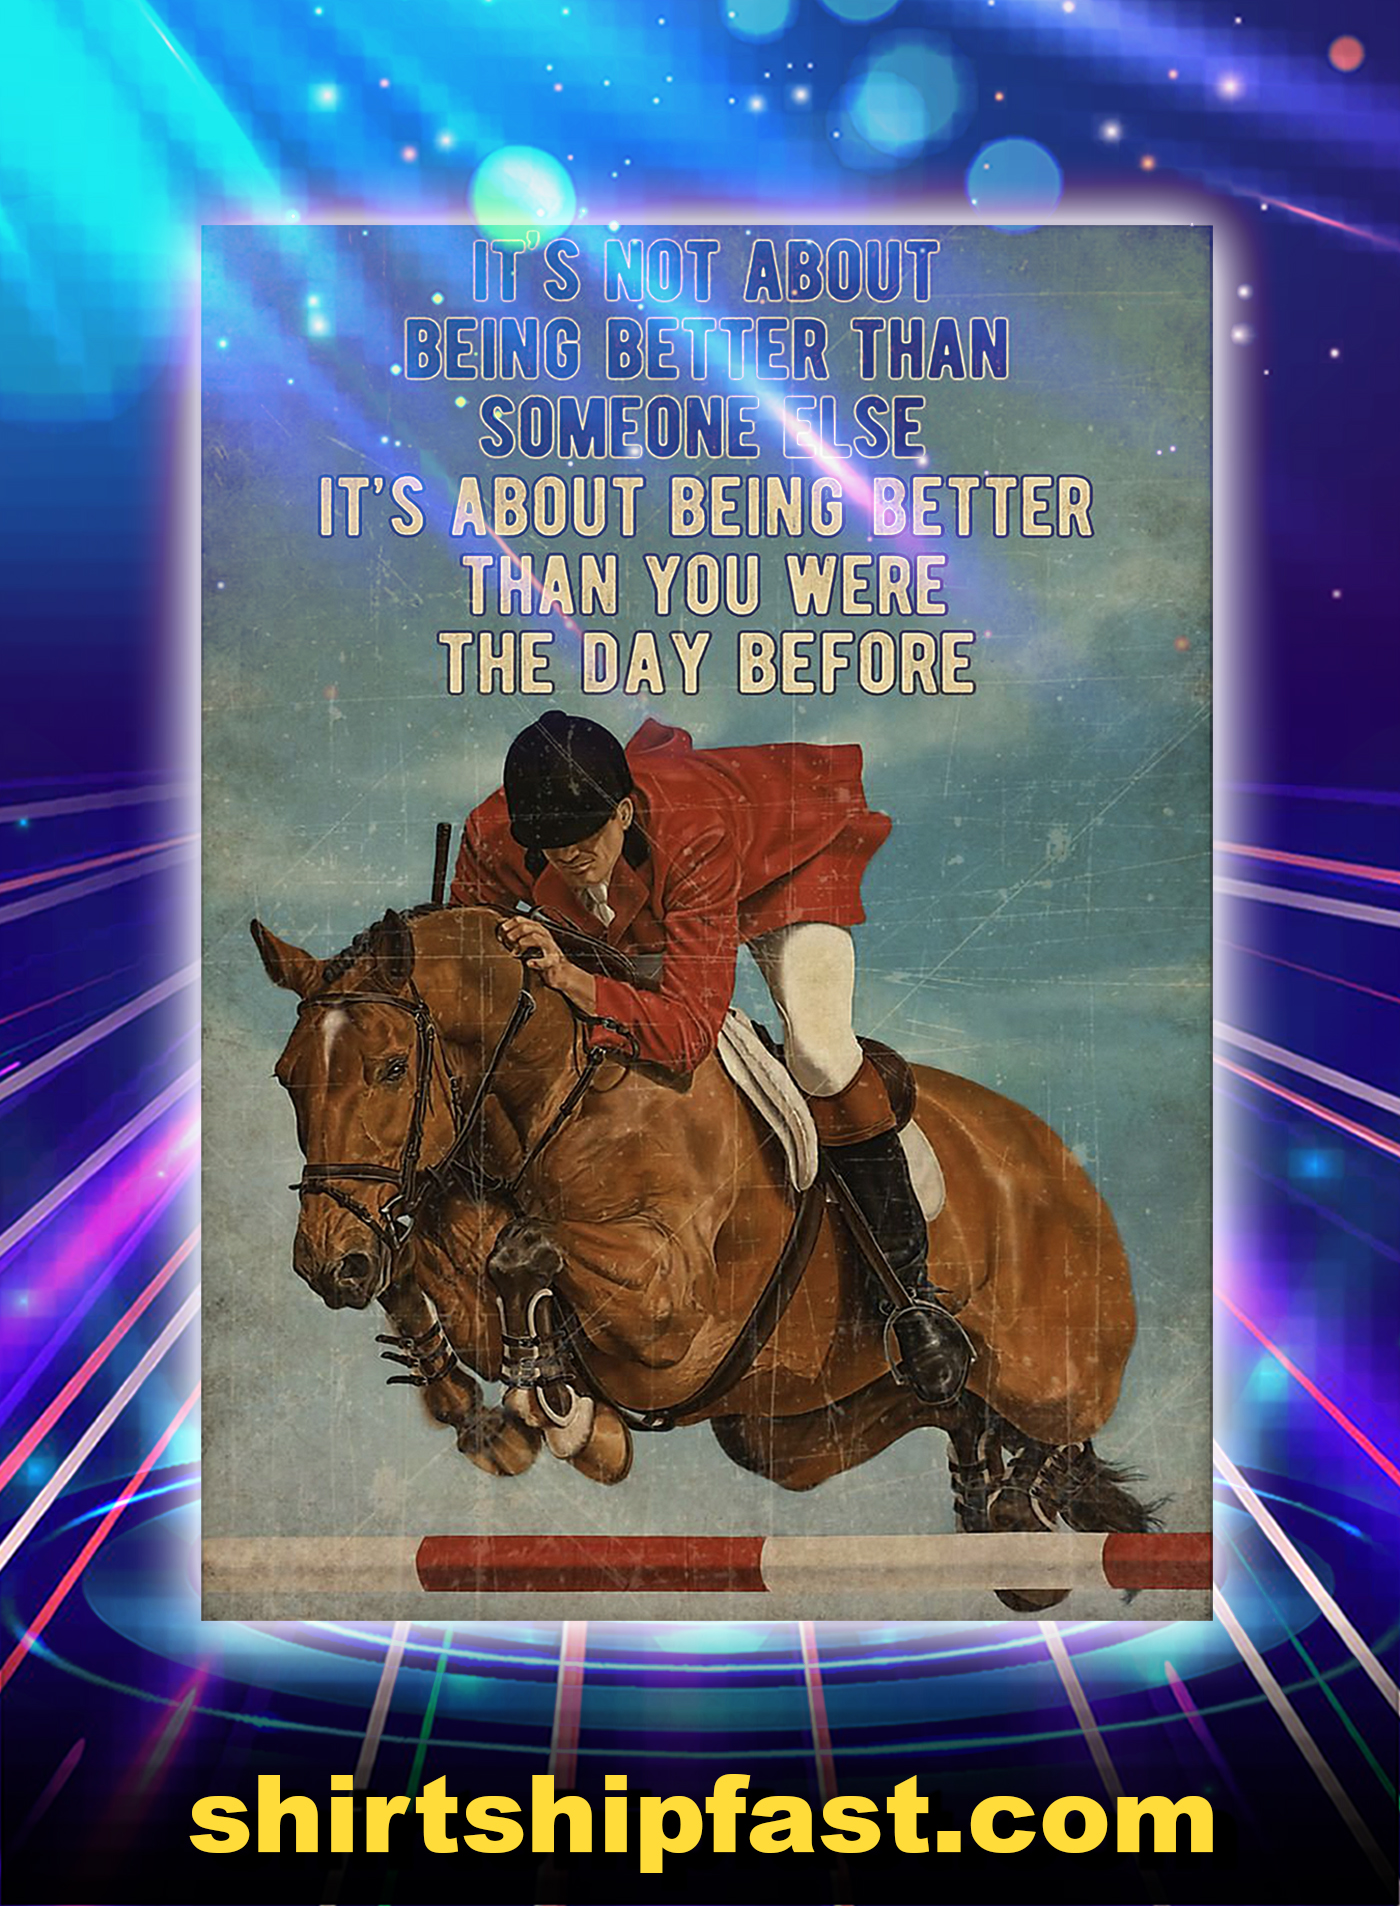 Show jumping It's not about being better than someone else poster - A1